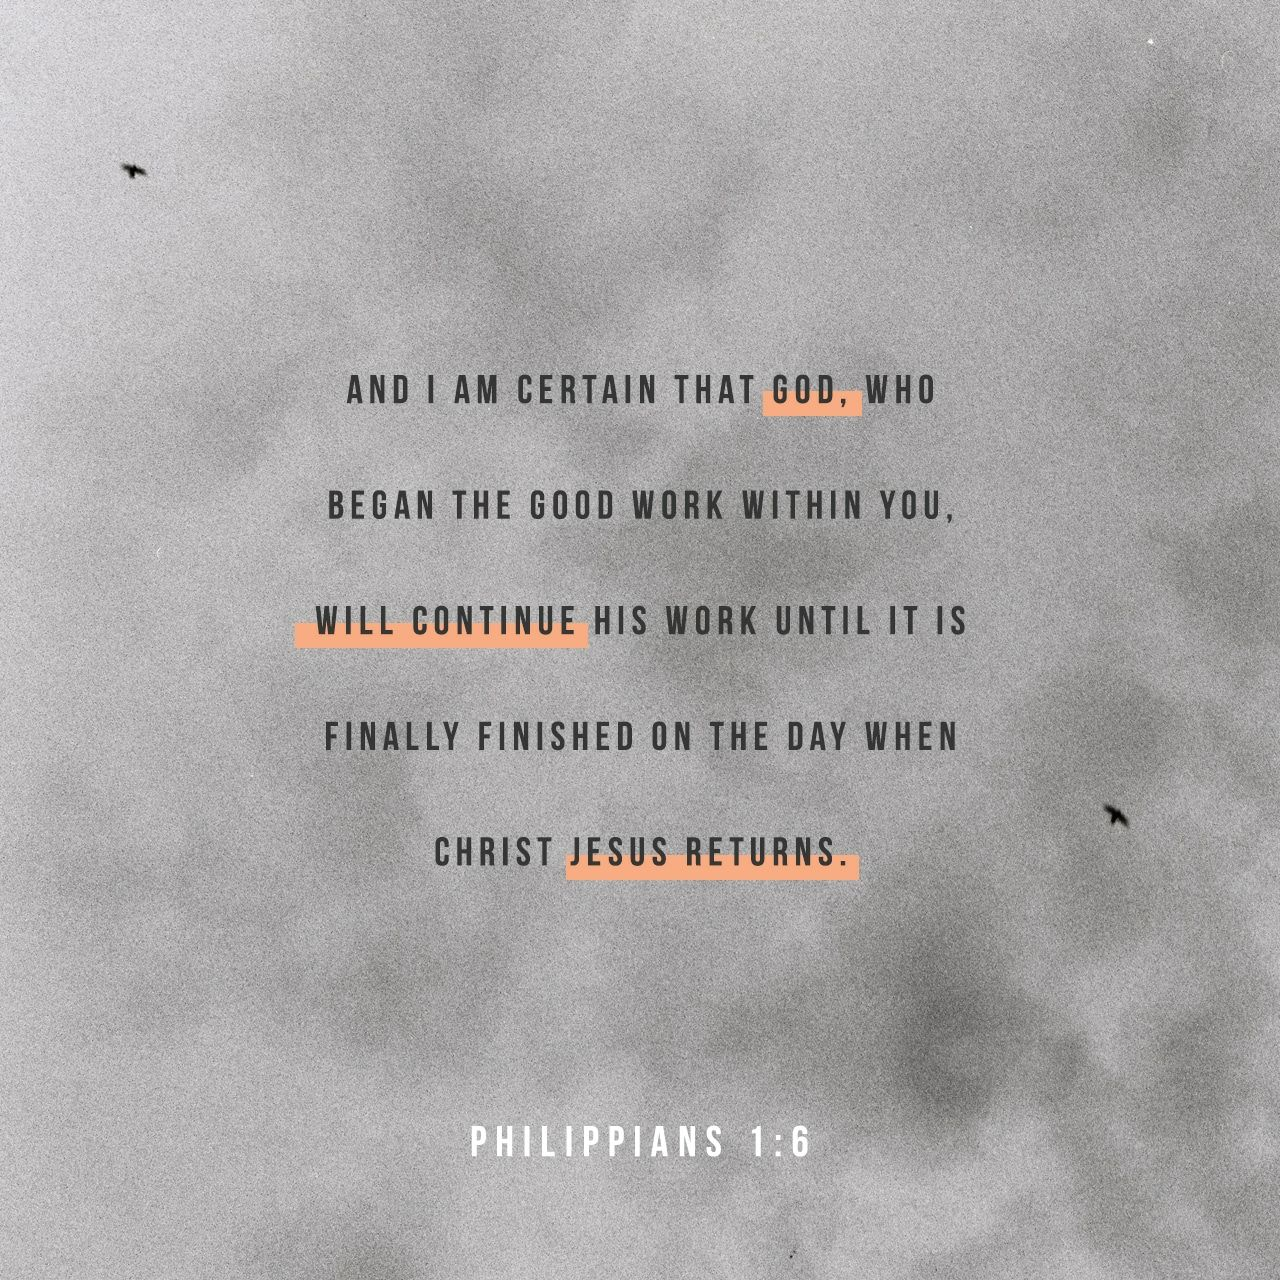 Image from YouVersion - https://www.youversion.com/